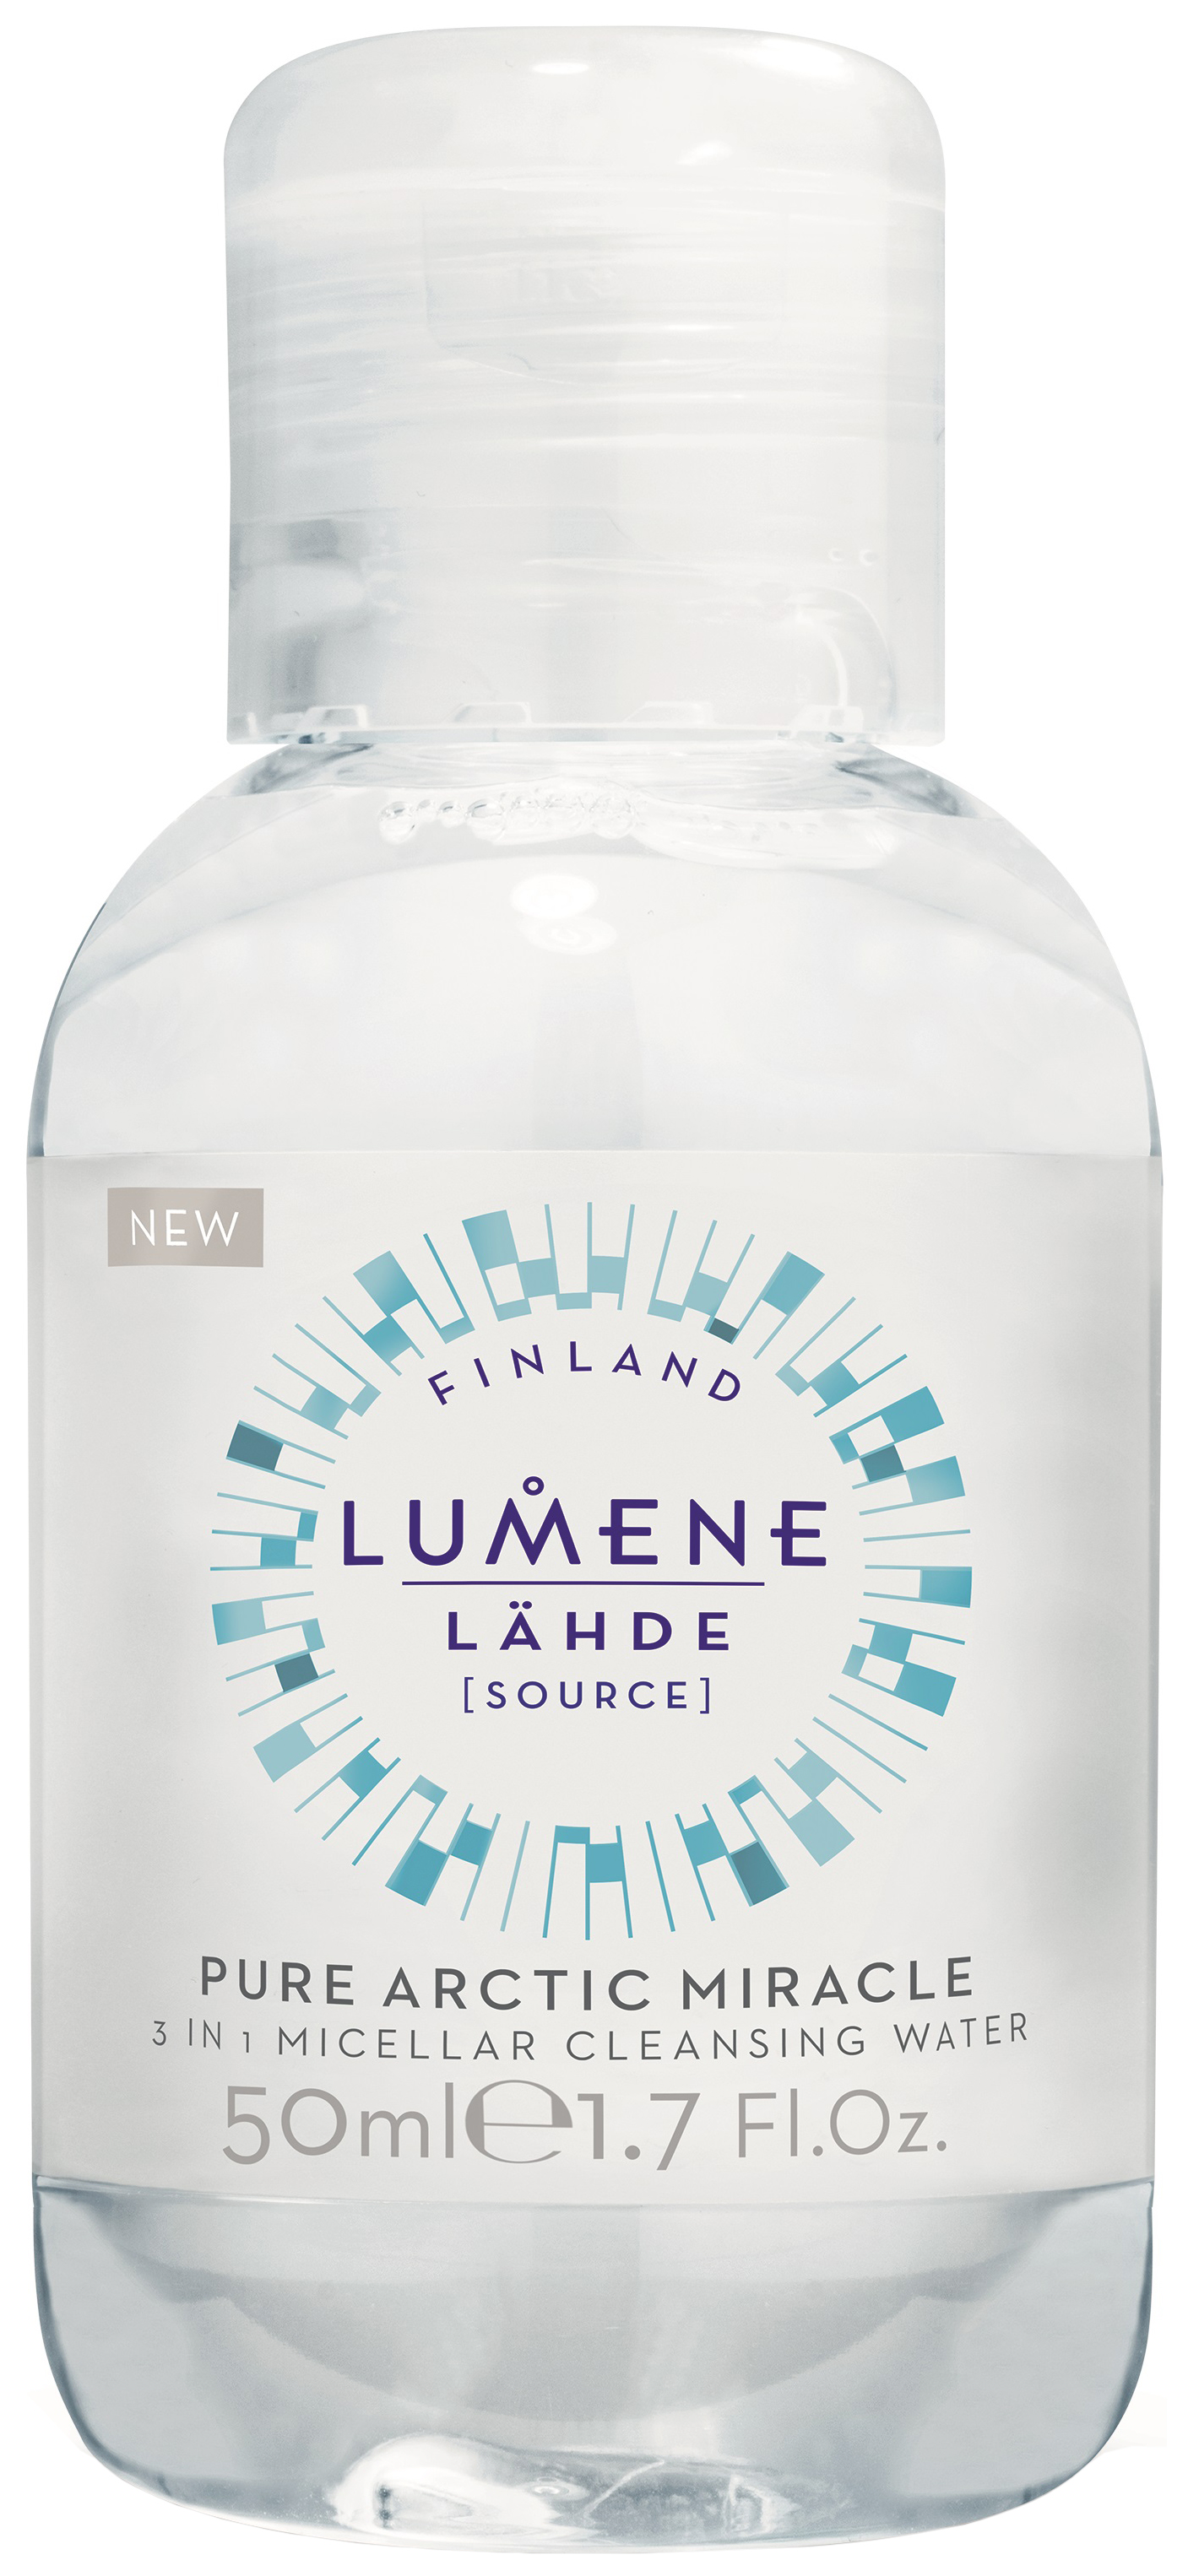 Мицеллярная вода Lumene Lahde Pure Arctic Miracle 3 in 1 Micellar Water 50 мл